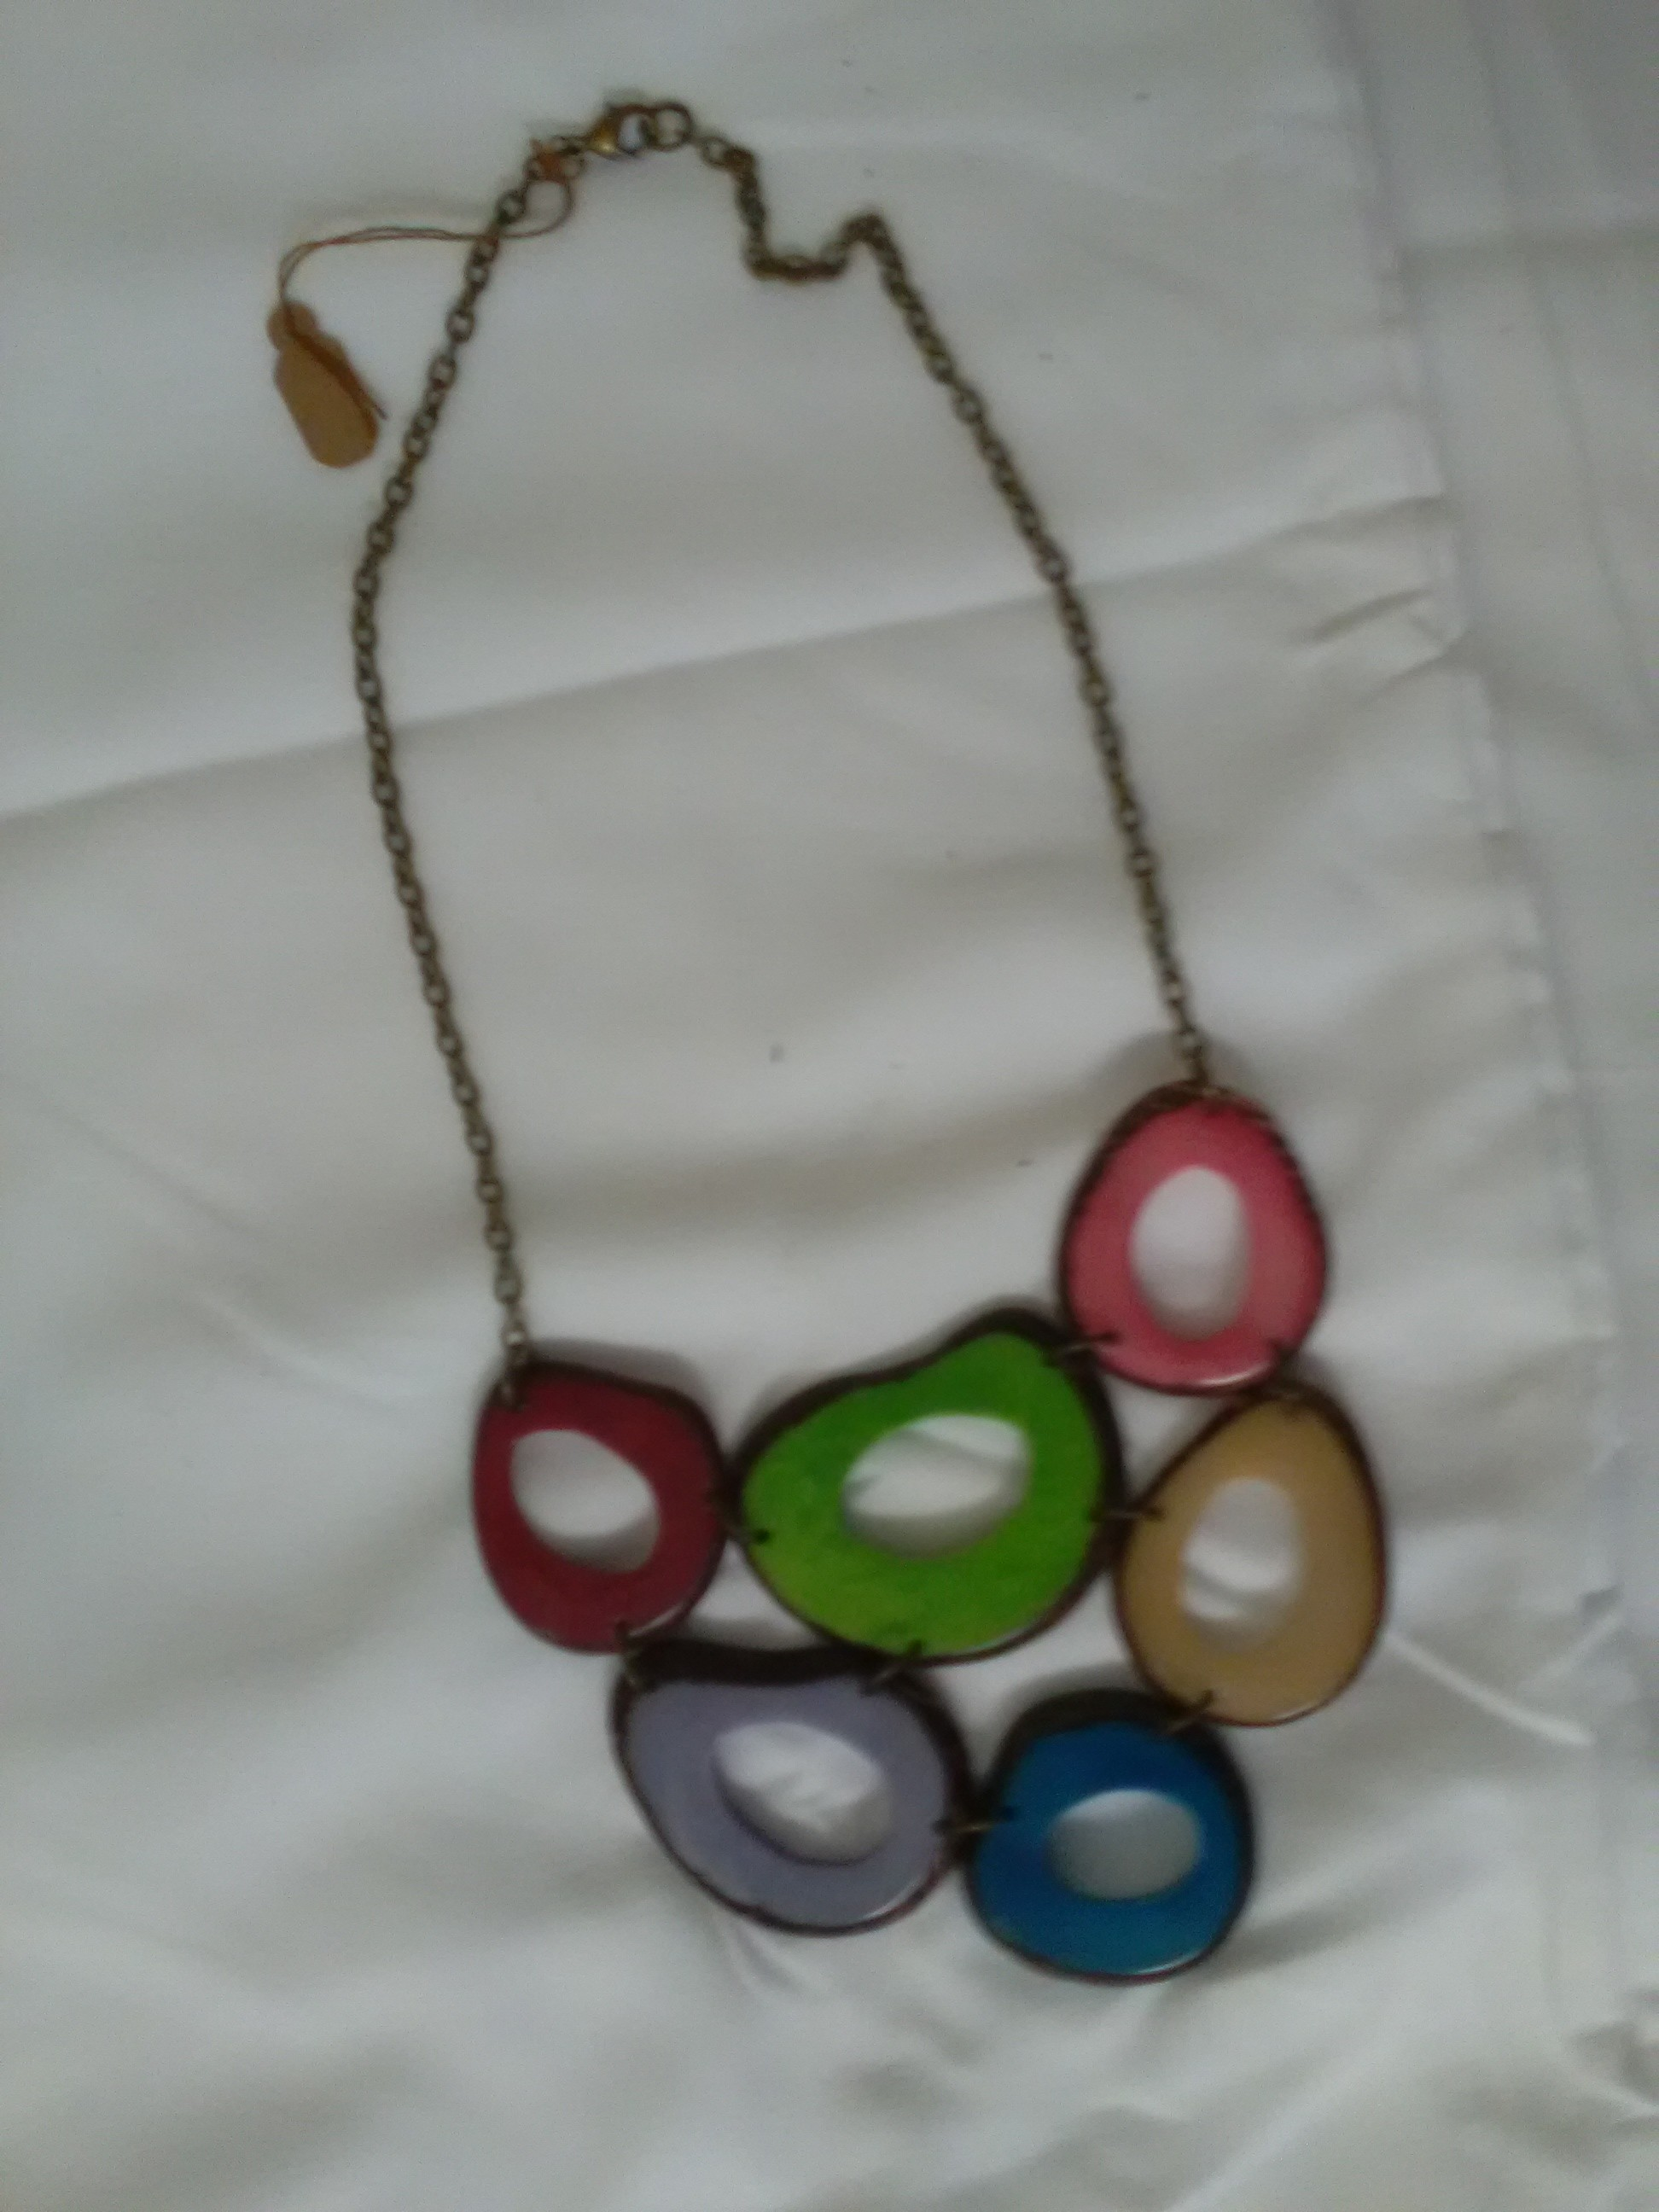 Rainbow circular pendant necklace by Jane & Michael Lewis